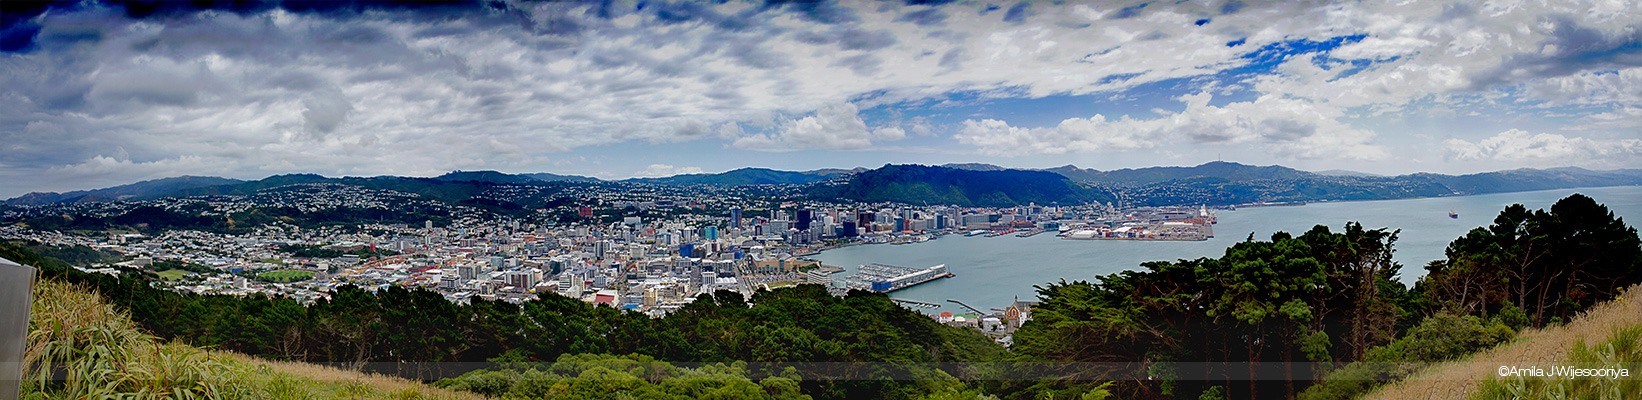 wellington Panorama by godwantsudead